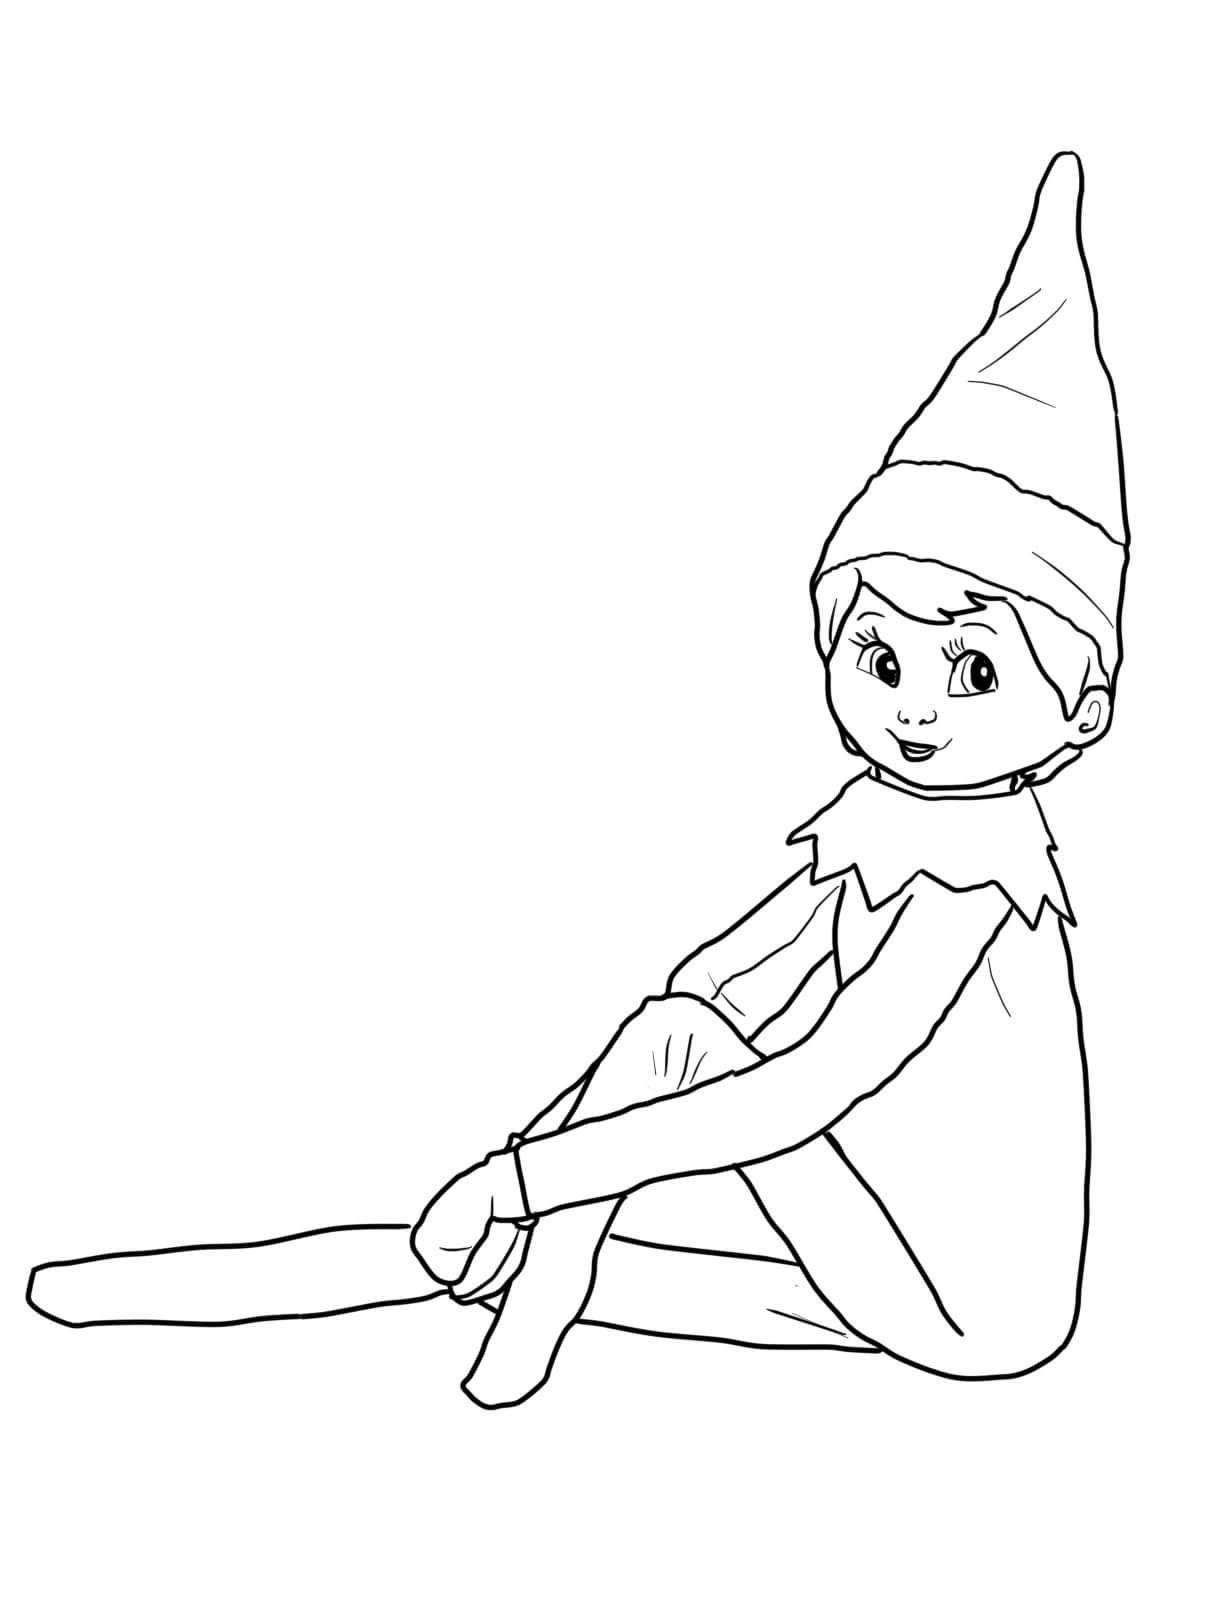 Elf On The Shelf Coloring Sheets Coloring Pages Coloring Pages